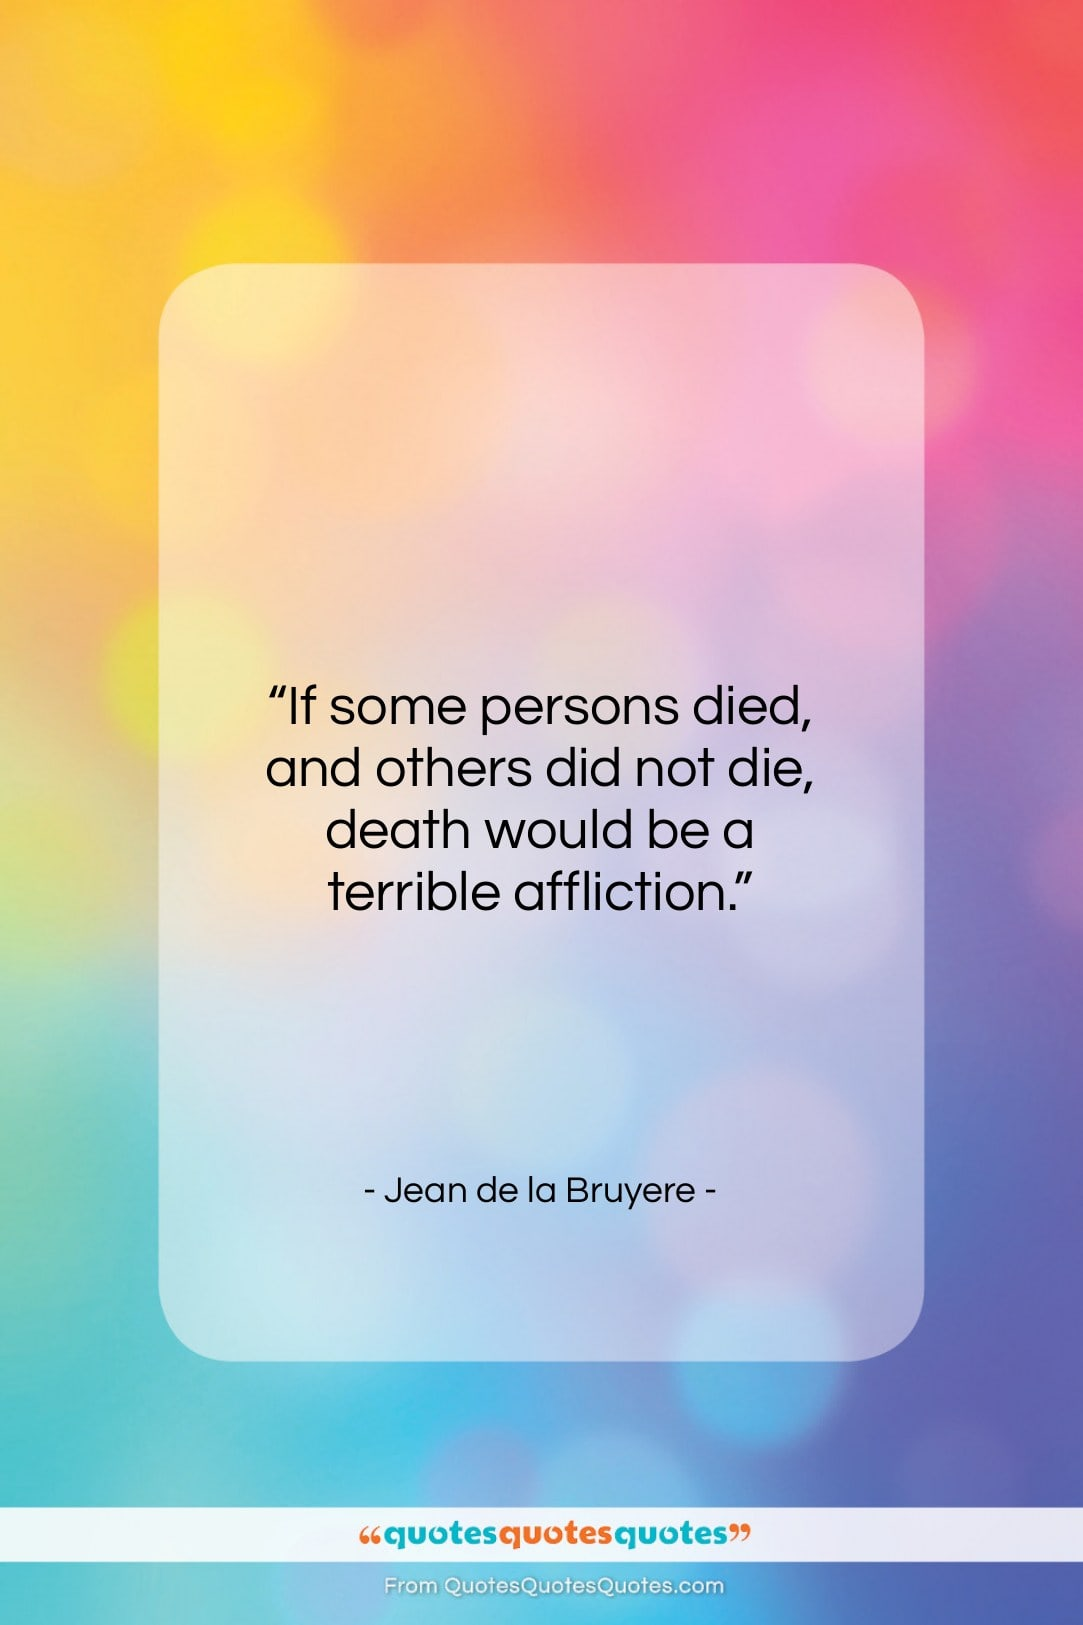 """Jean de la Bruyere quote: """"If some persons died, and others did…""""- at QuotesQuotesQuotes.com"""